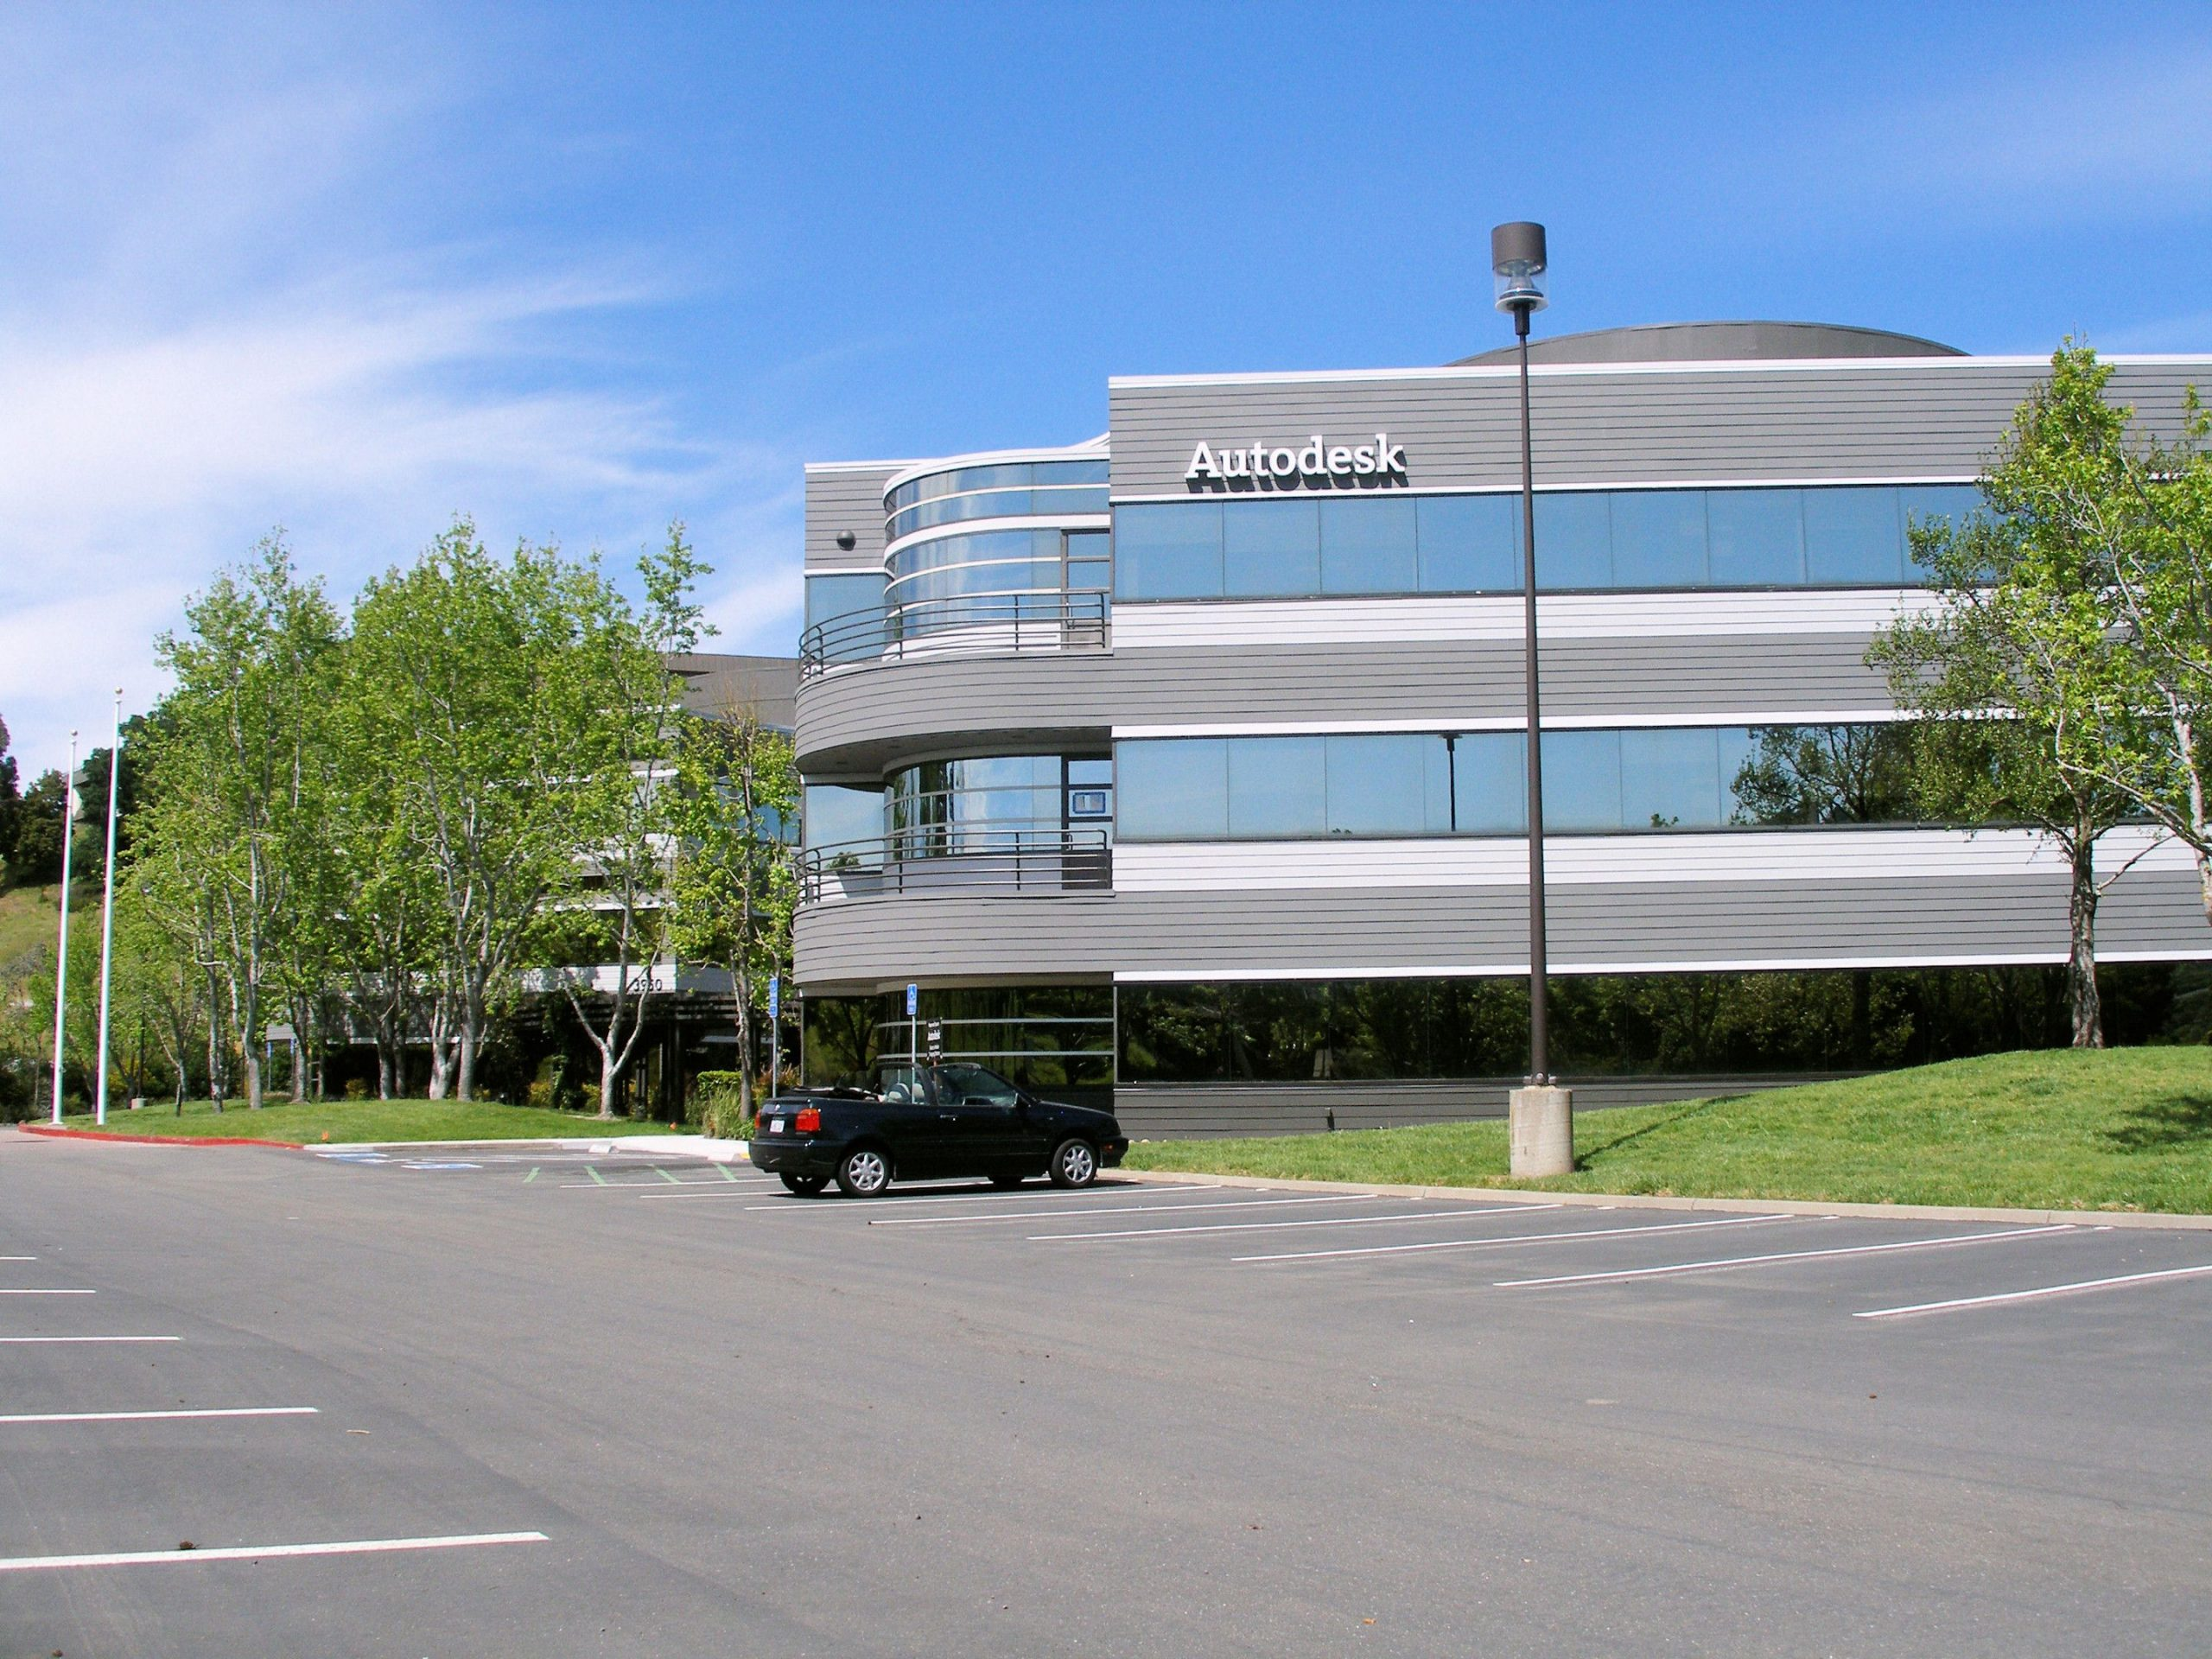 Photo of Autodesk HQ